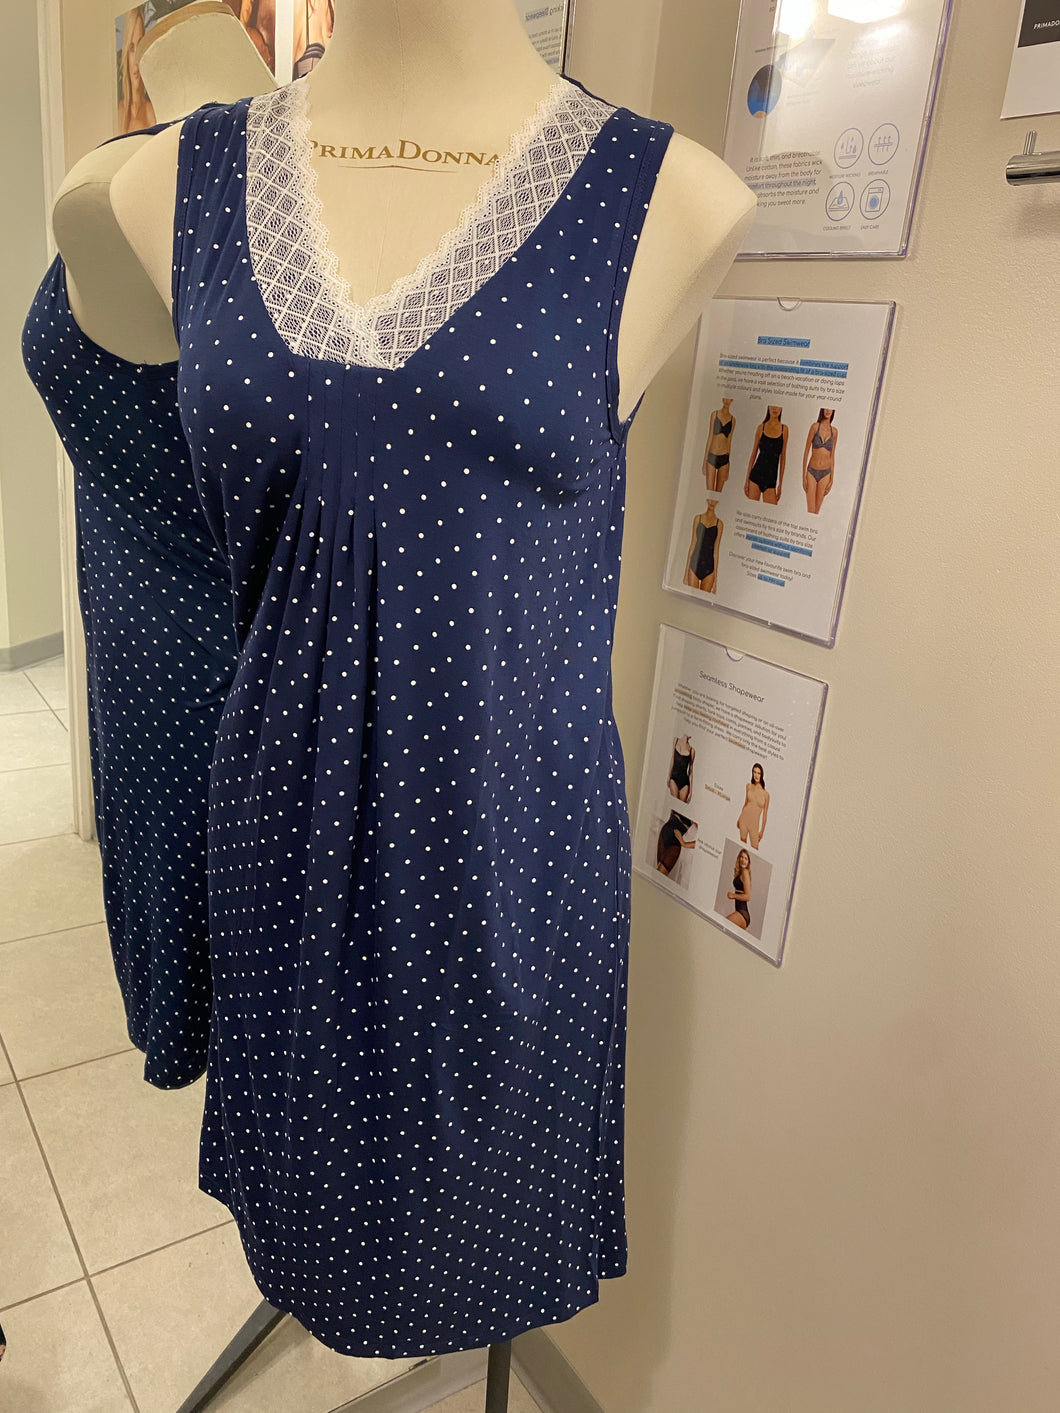 Patricia Moisture Wicking Navy + White Dots Pajama Tank Dress